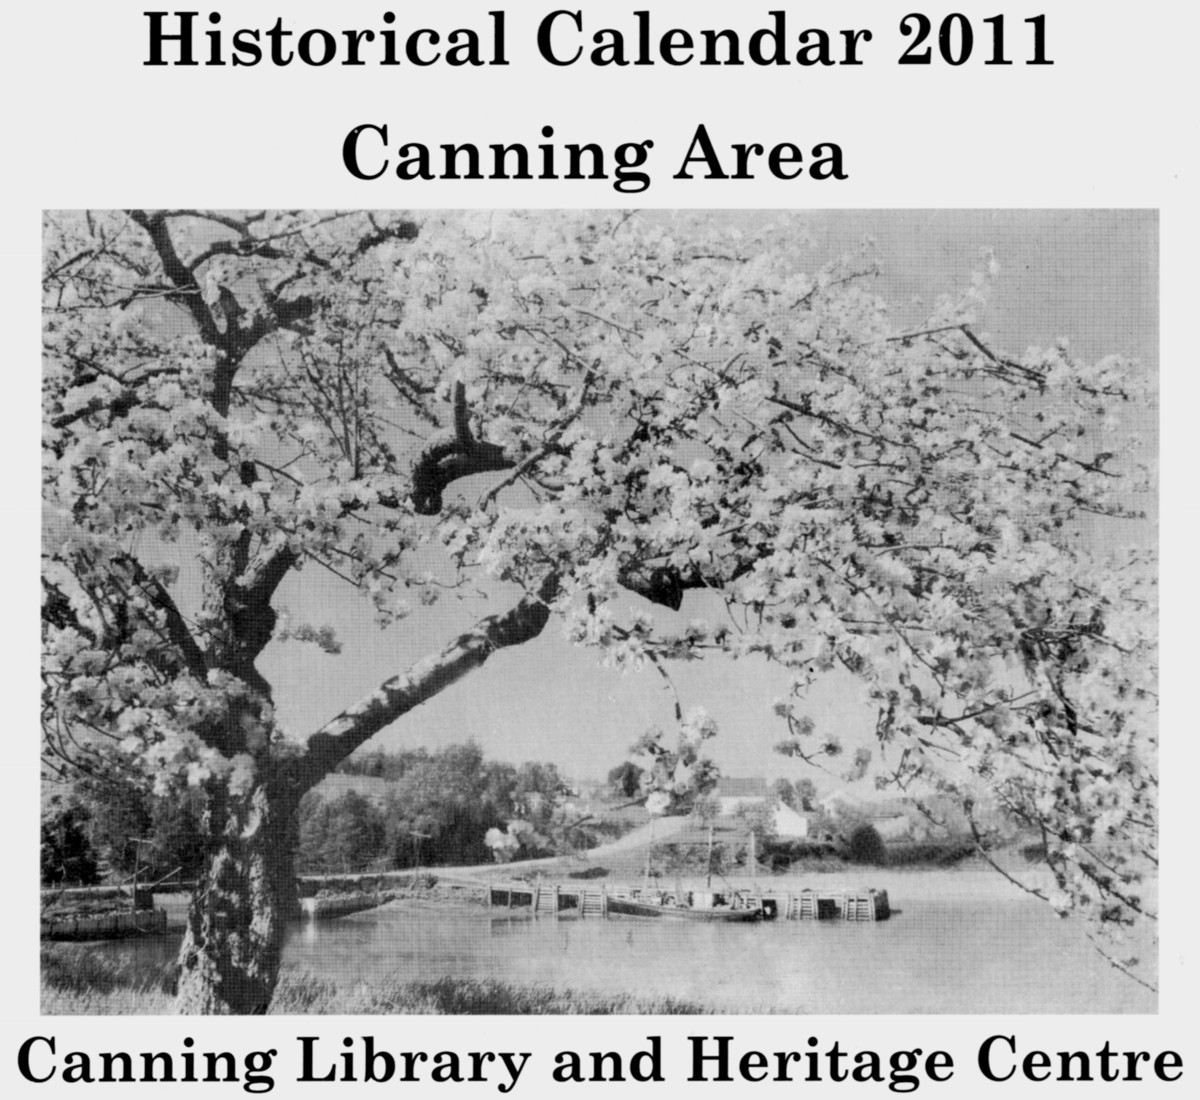 Canning Library and Heritage Center, Historical Calendar 2011